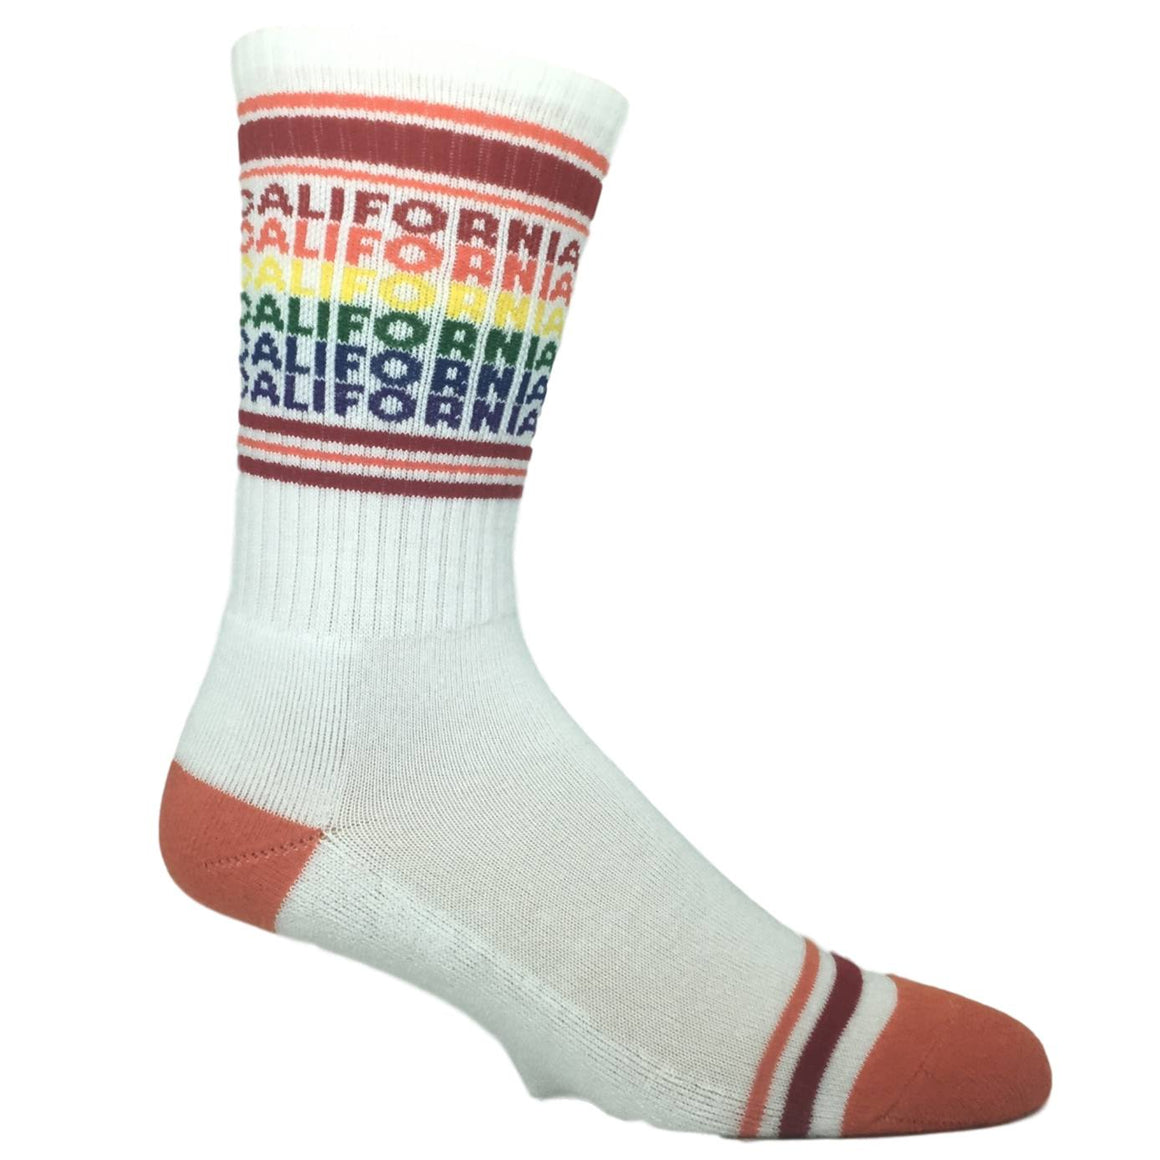 California Athletic Socks by Gumball Poodle - The Sock Spot